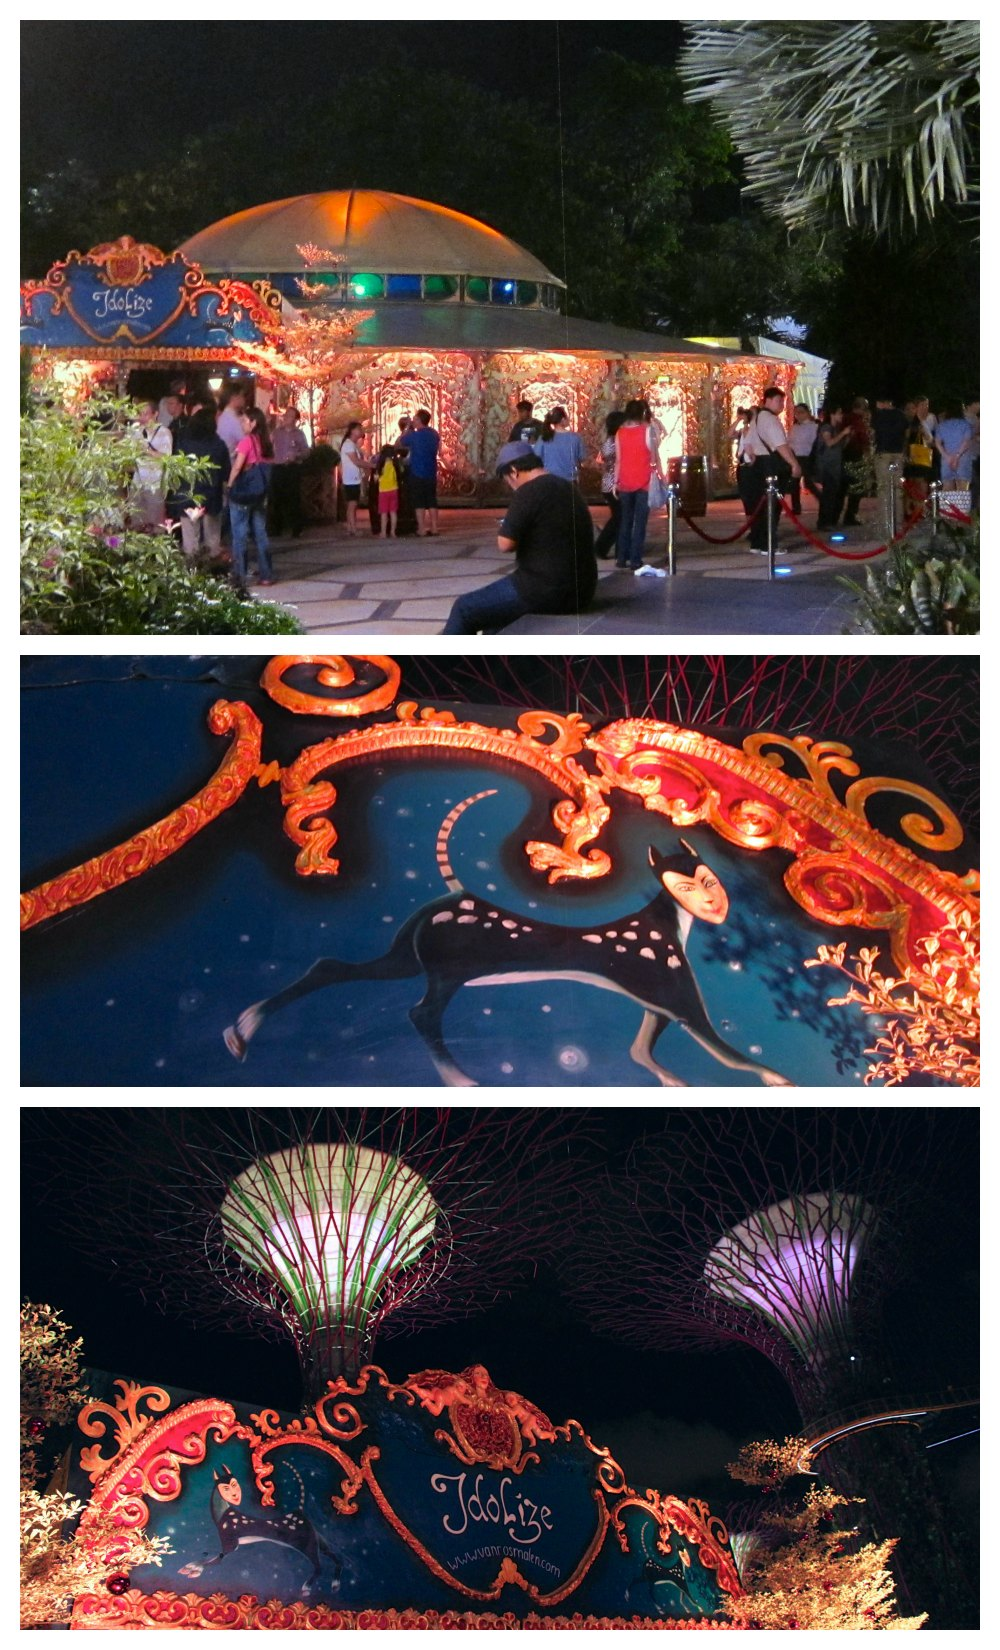 Dutch mirror tent at a Christmas Wonderland | curlytraveller.com